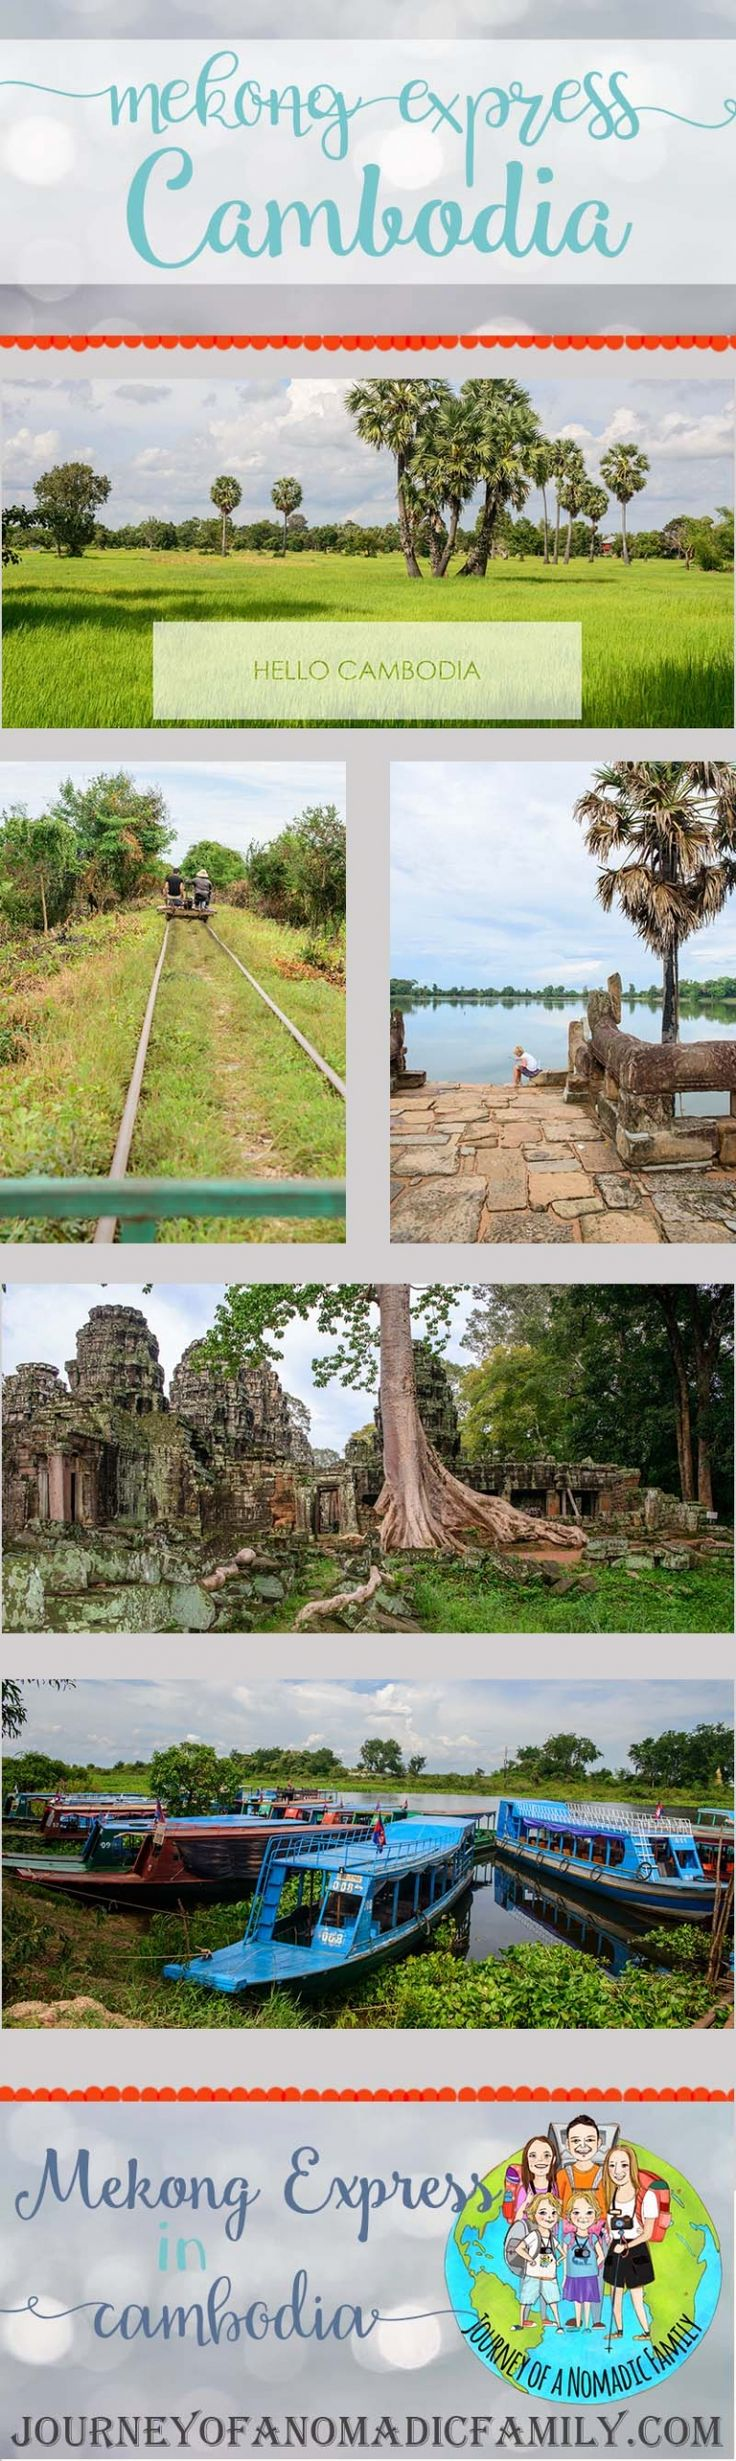 How to book the Mekong Exress from Siem Reap to Battambang in Cambodia